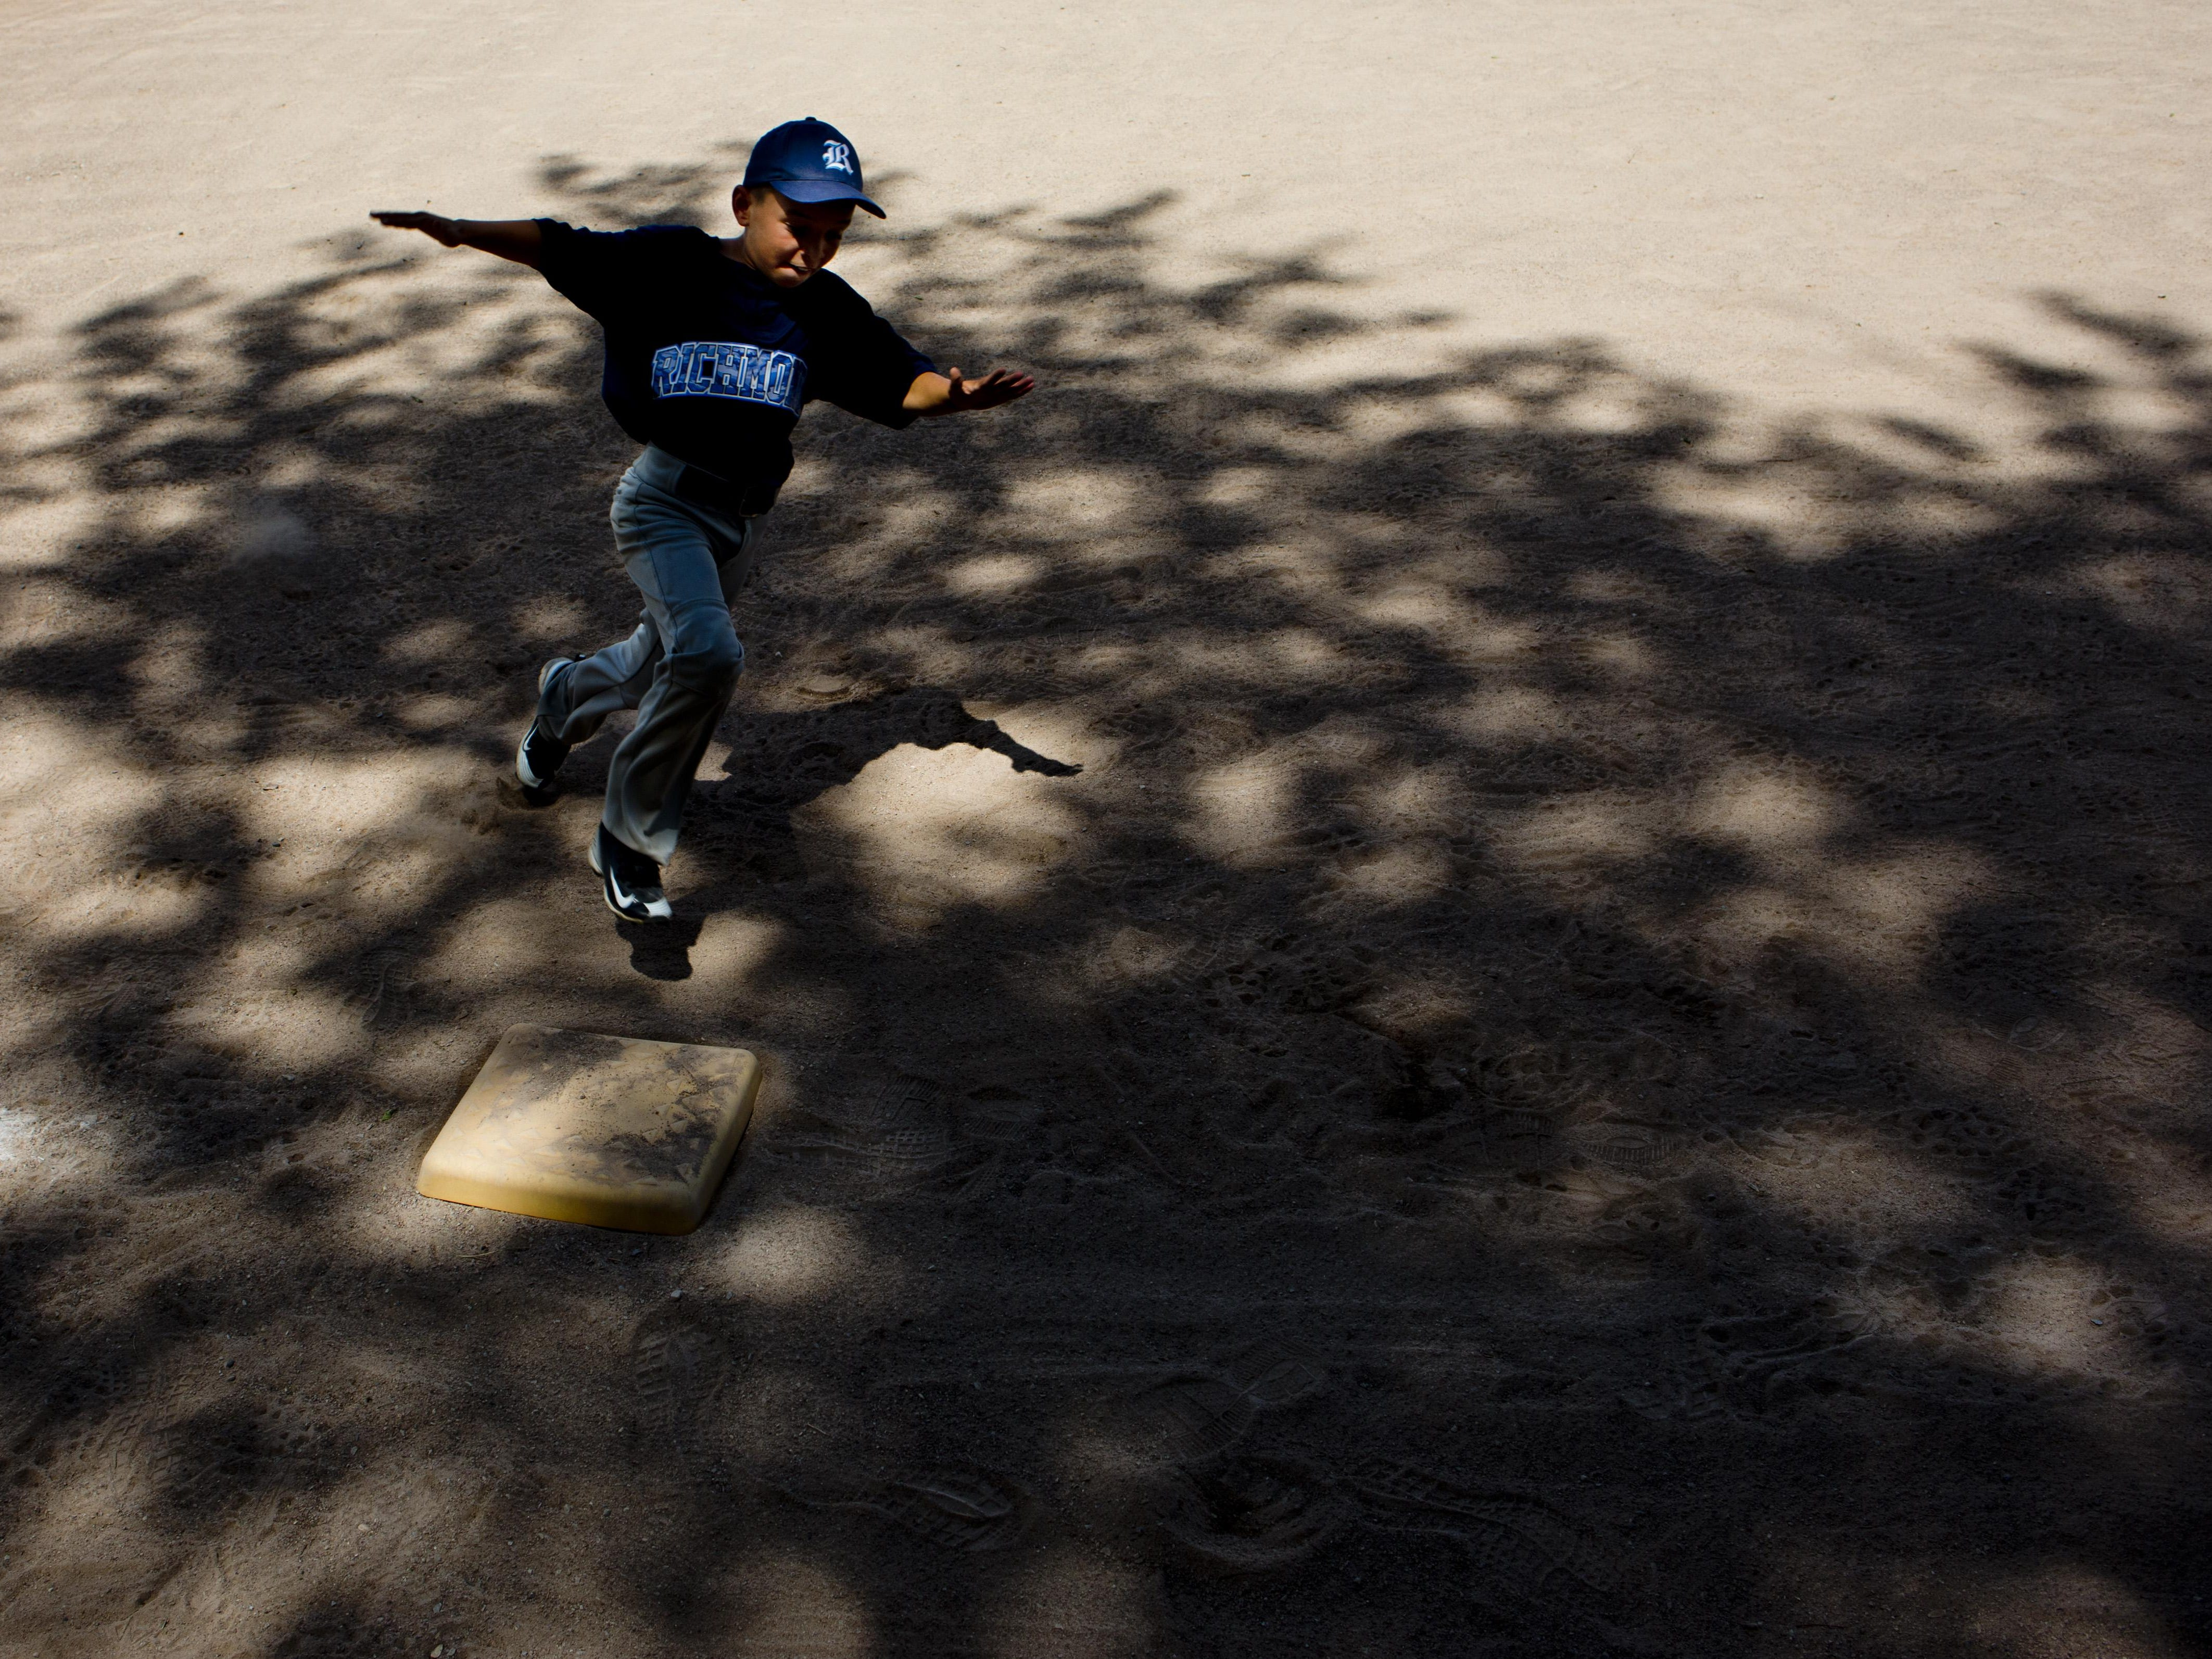 Richmond's Maximus Greenia, 9, rounds third while competing in base running during a Little League skills competition Saturday, August 1, 2015 at Marysville City Park.